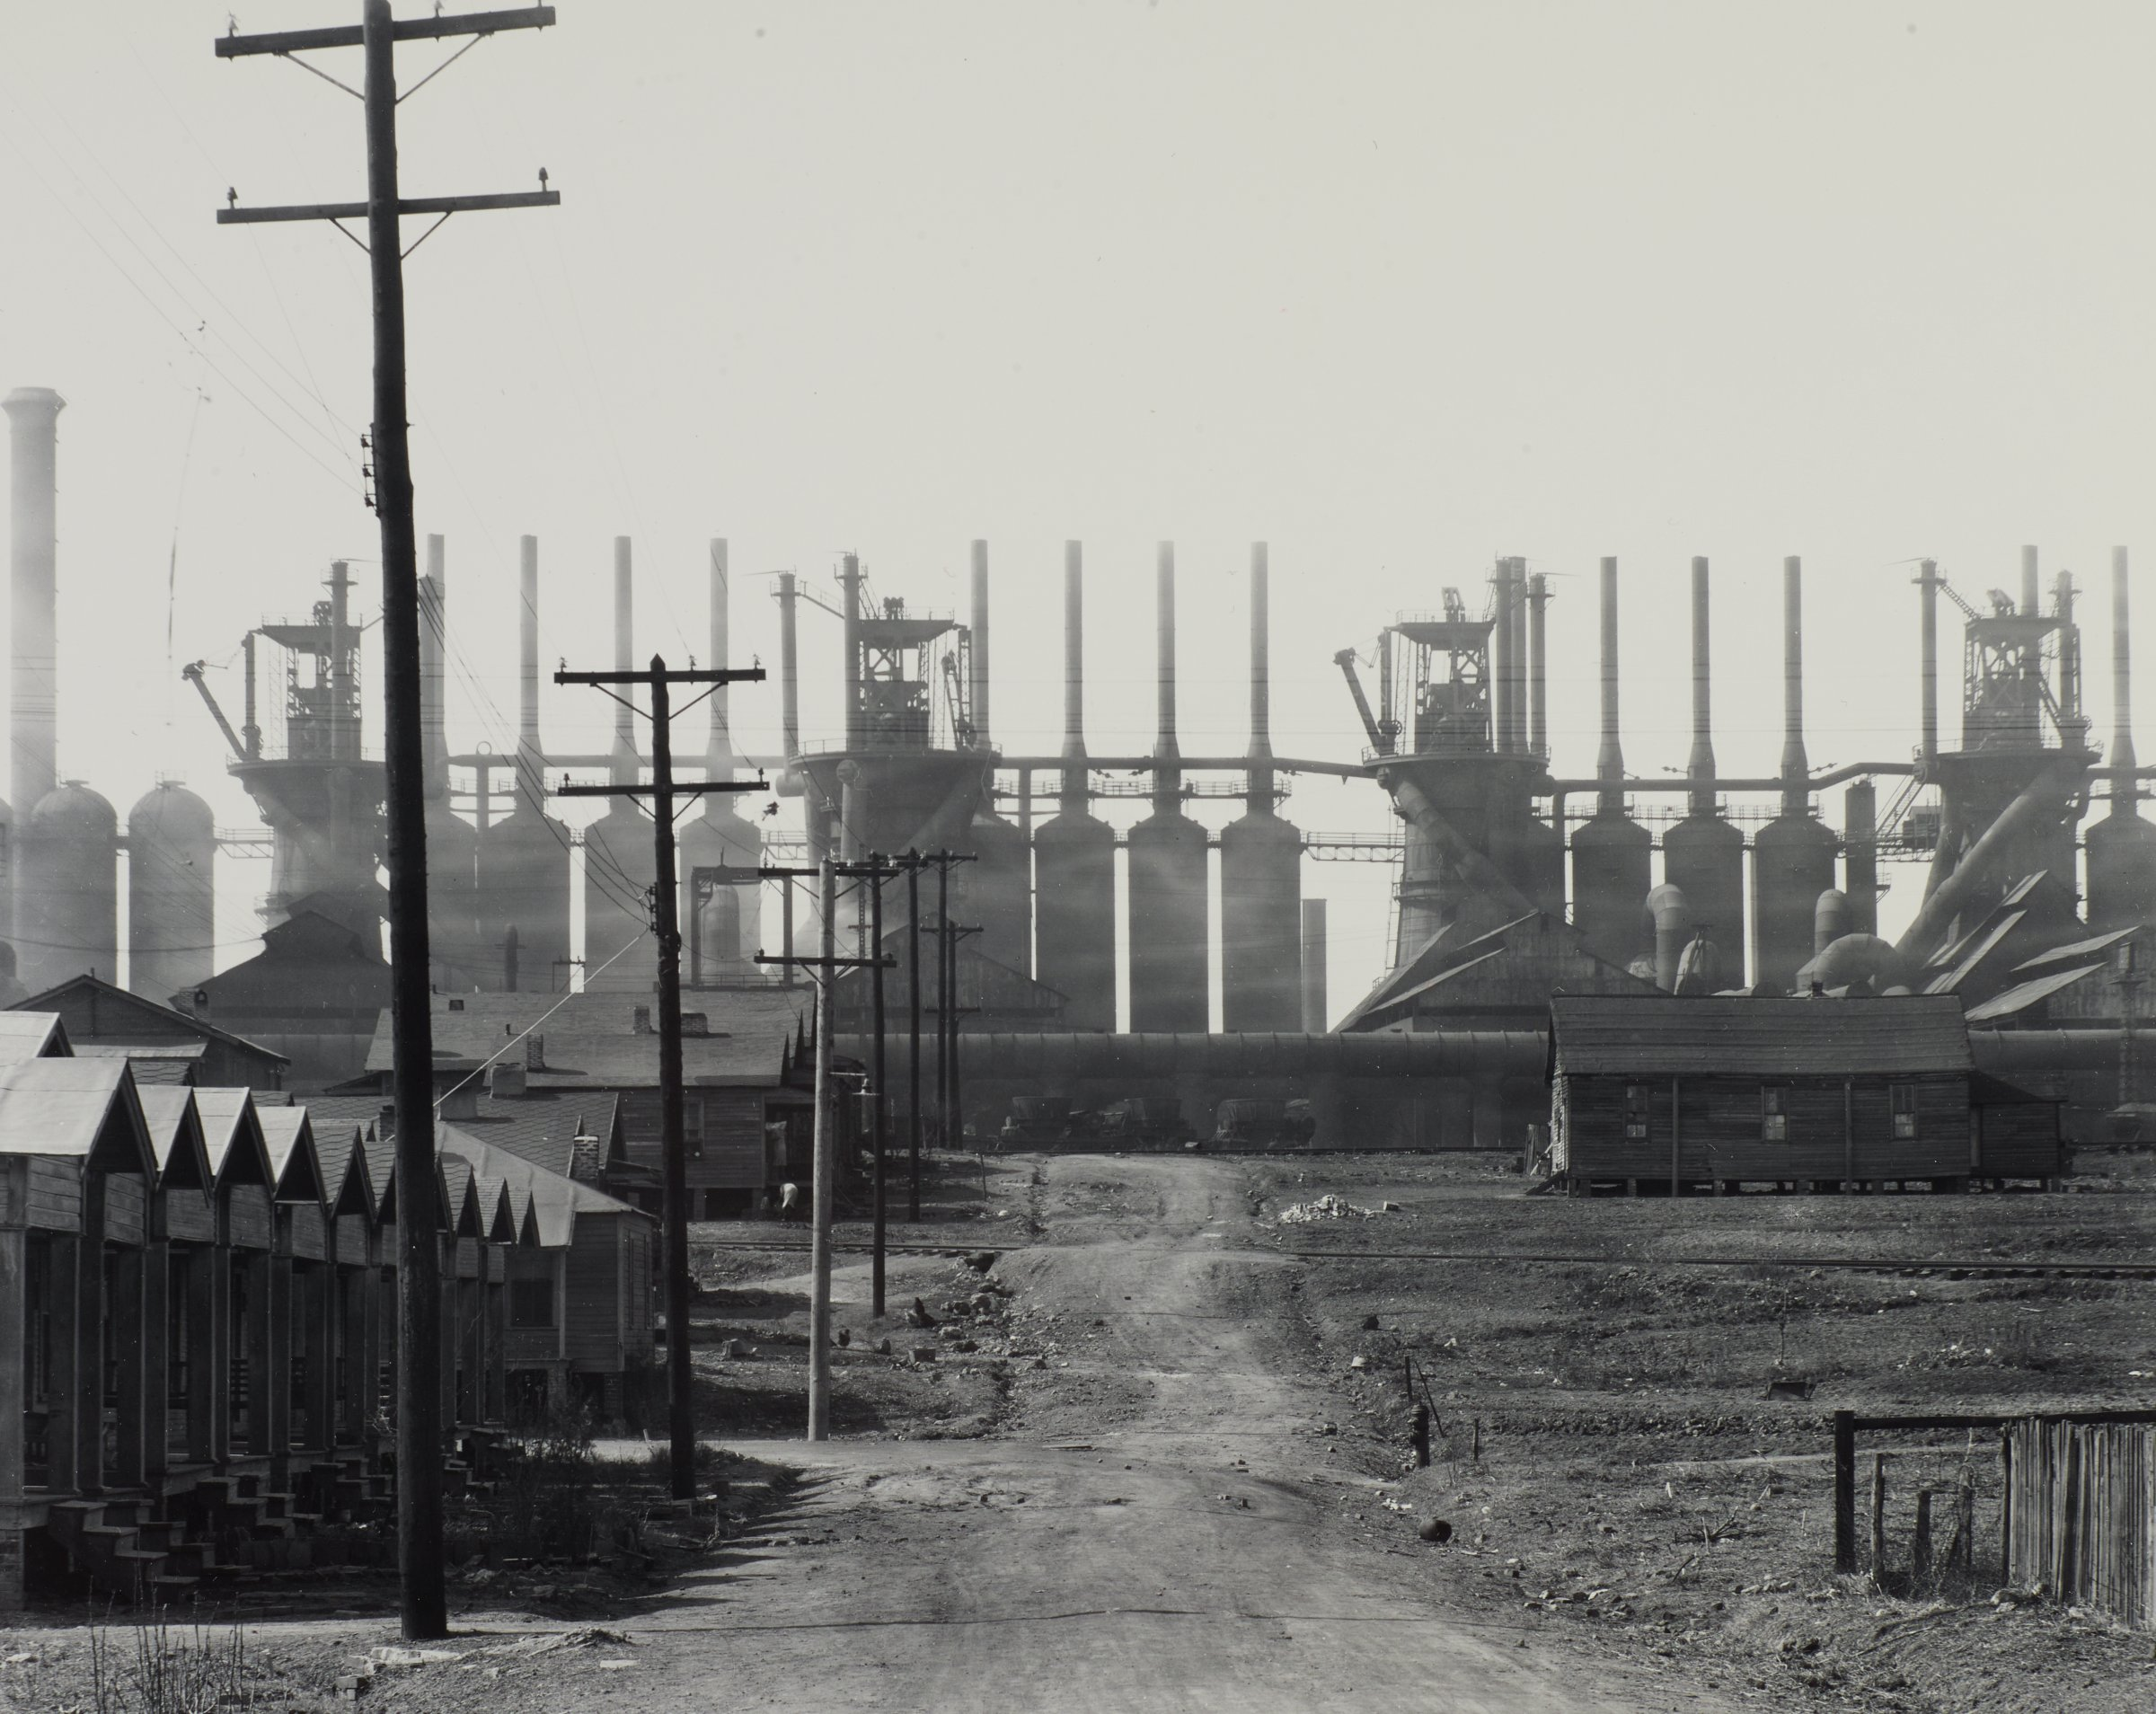 A black and white photographs featuring a dirt road leading up to a Steel mill in the background. The steel mill is the Ensley Works steel plant in Birmingham, Alabama. To the left of the dirt road is single story smaller houses, with some larger structures to the end of the road, and one on the right side of the road as well. Power poles also line the road on the left side, leading up to the steel plant. The furnaces of the plant are wider towards the base with much thinner chimneys on the top.